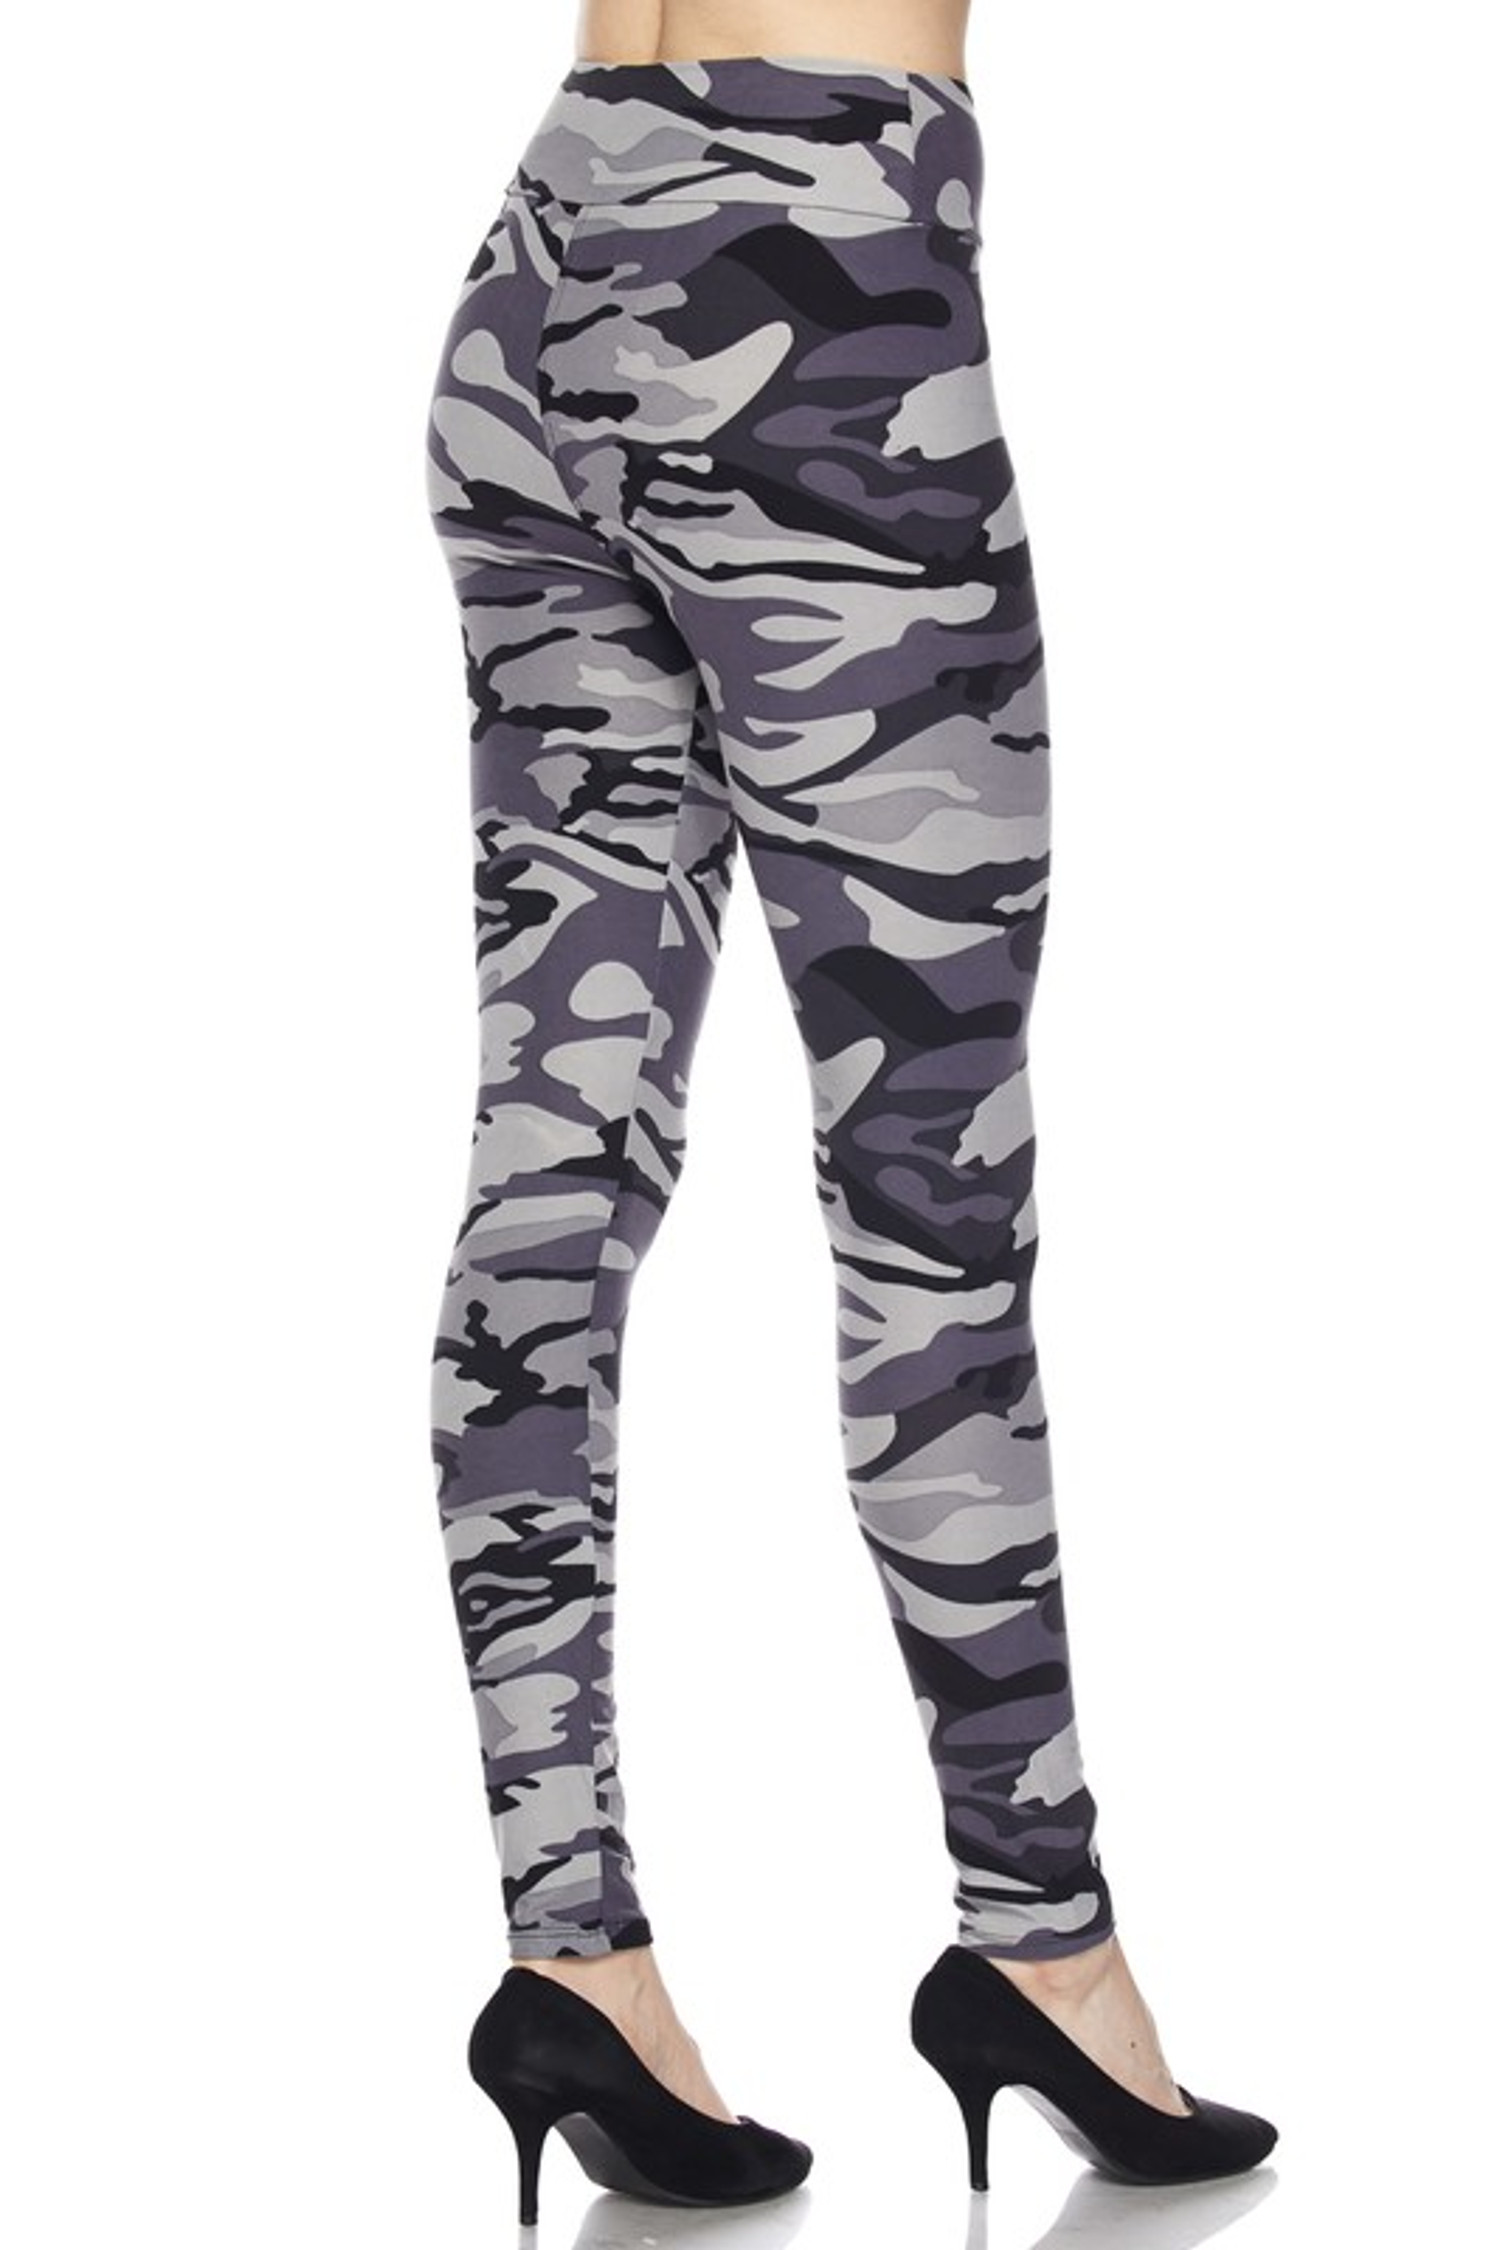 Brushed  Charcoal Camouflage High Waist Leggings